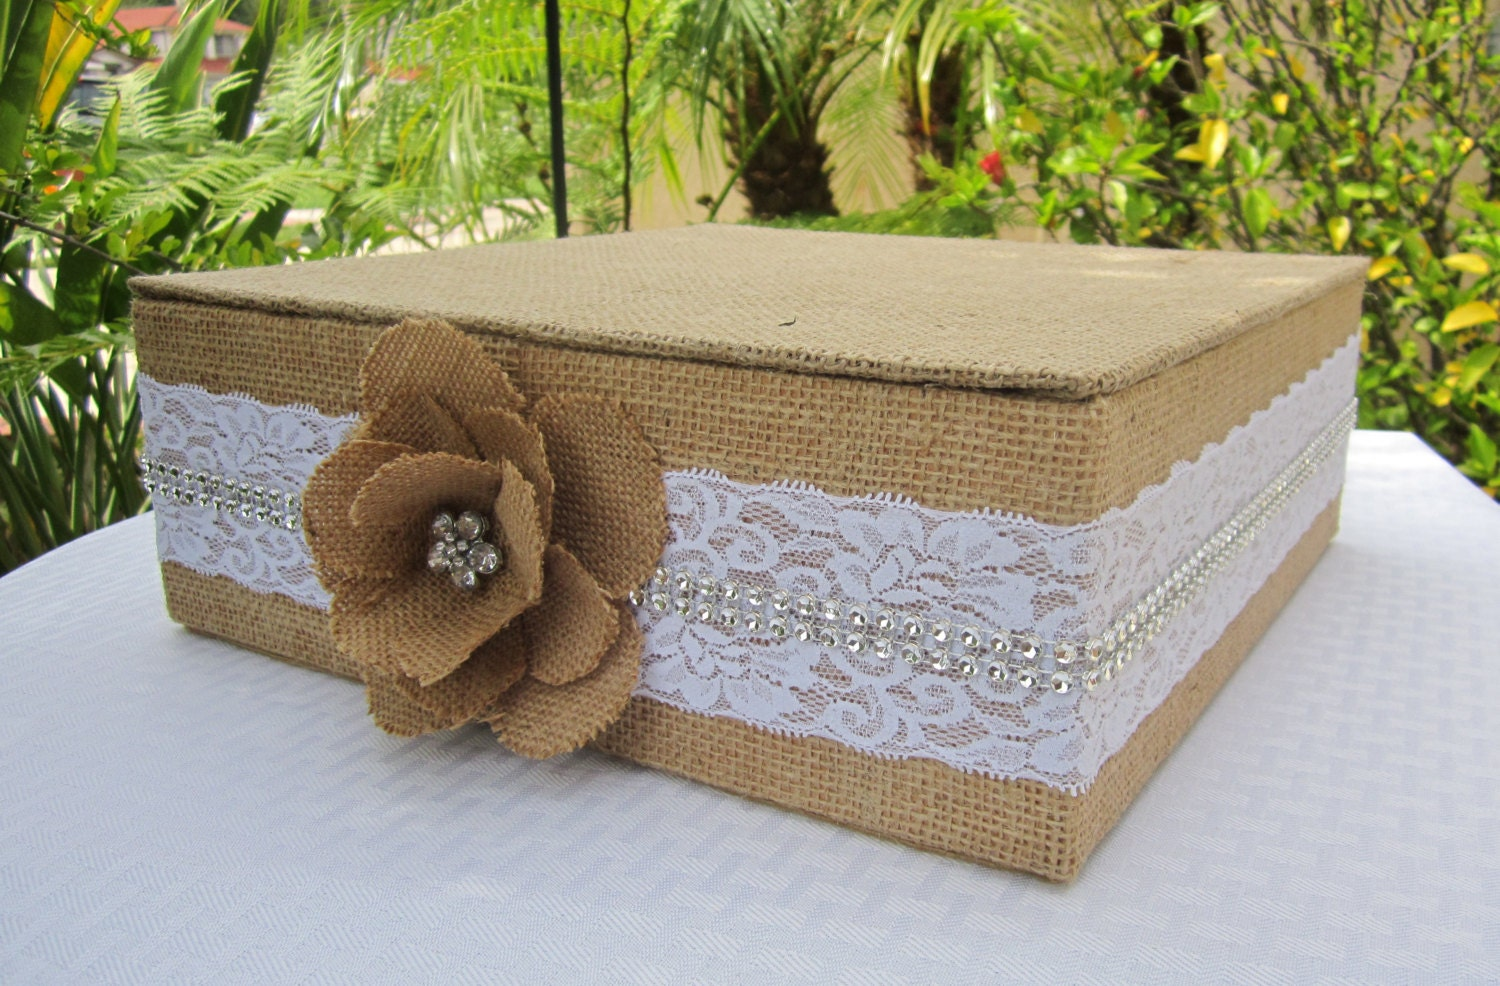 15 22 Burlap and Lace Square Wedding Cake Stand